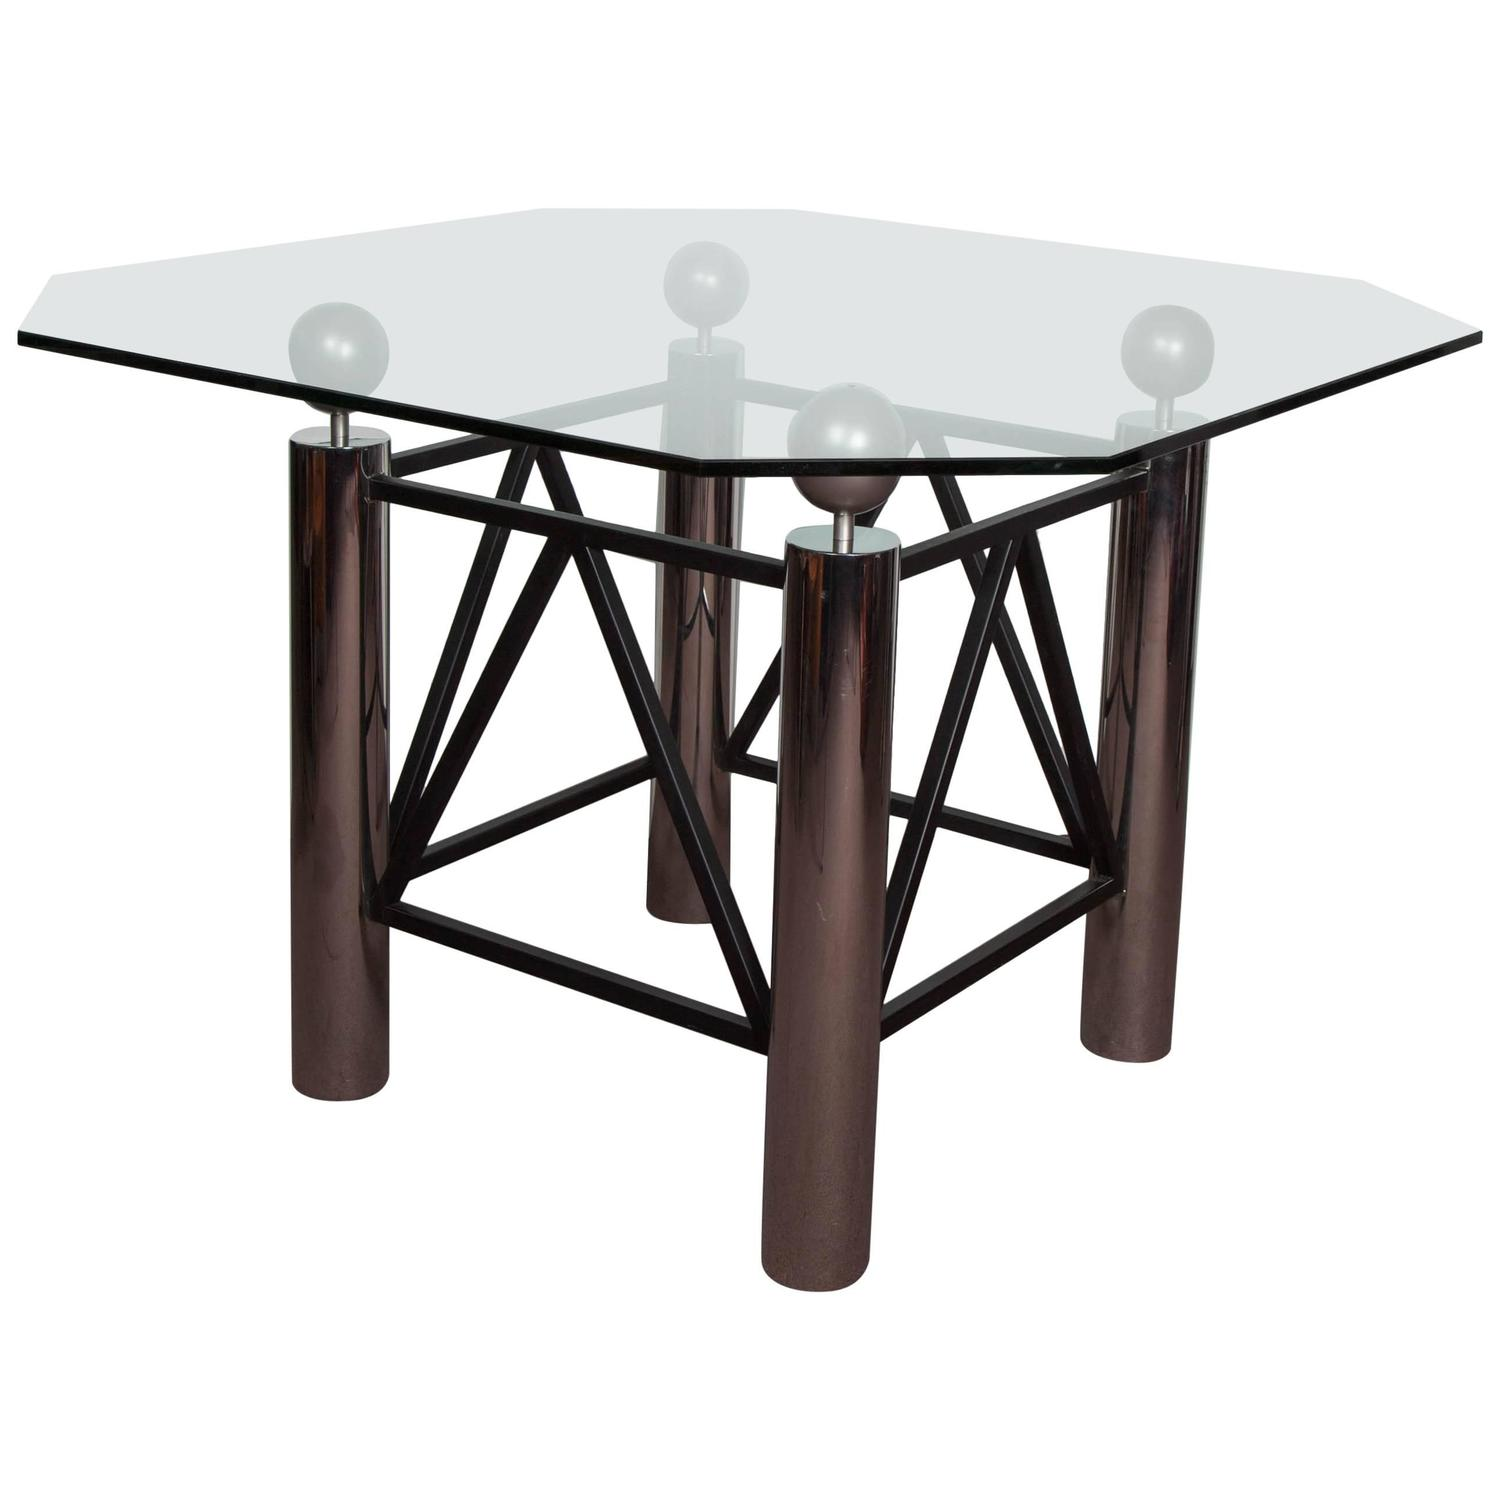 Center Table With Glass : ... Modern Dining or Center Table in Chrome, Metal and Glass at 1stdibs